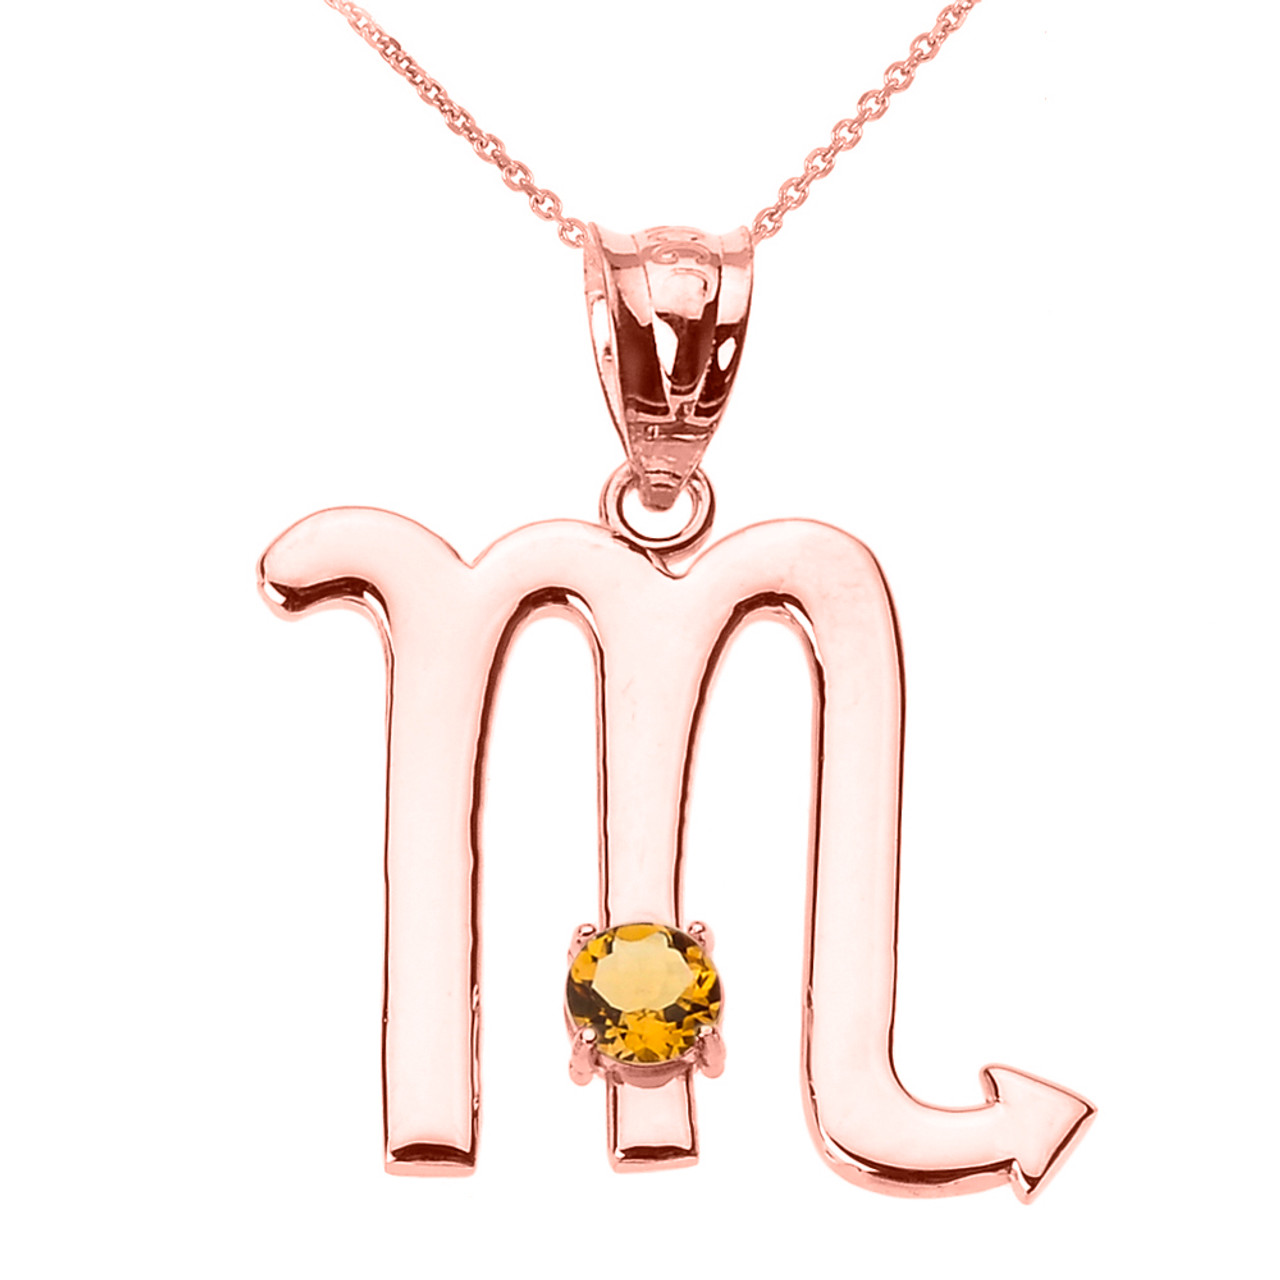 id kid for s a buy orra list unisex best review gold category online product pendant scorpio